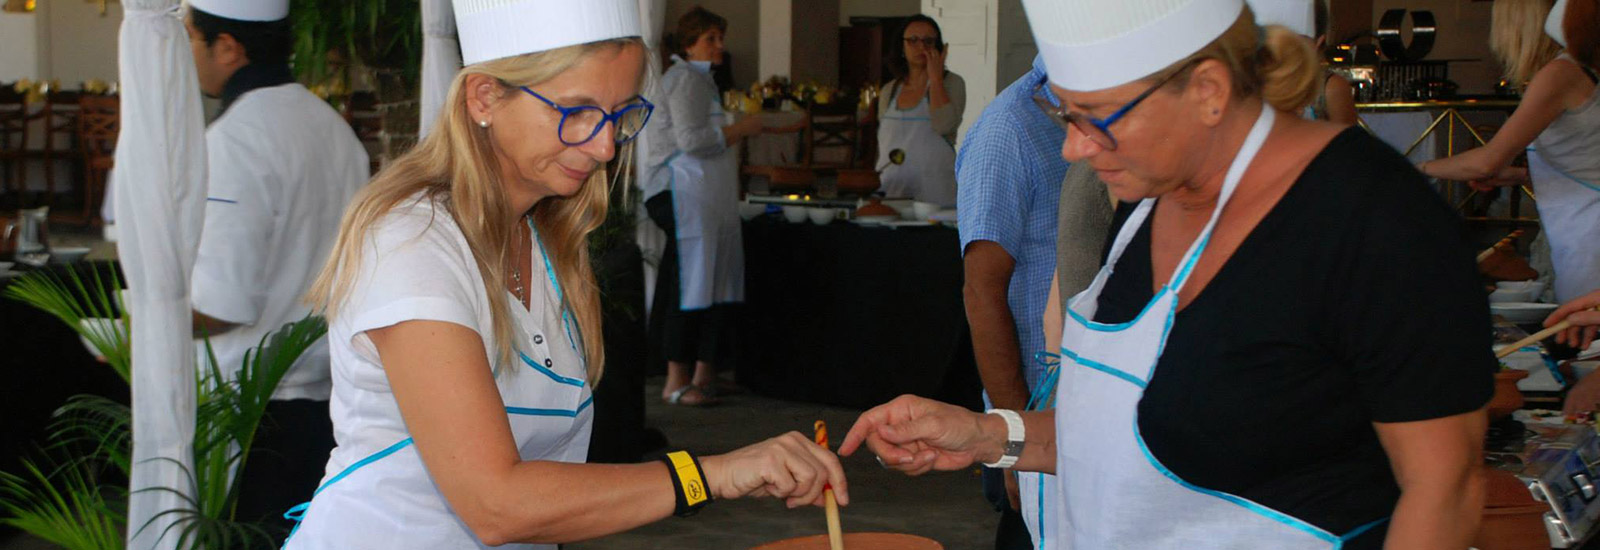 Culinary-Expeditions-1-1600x550